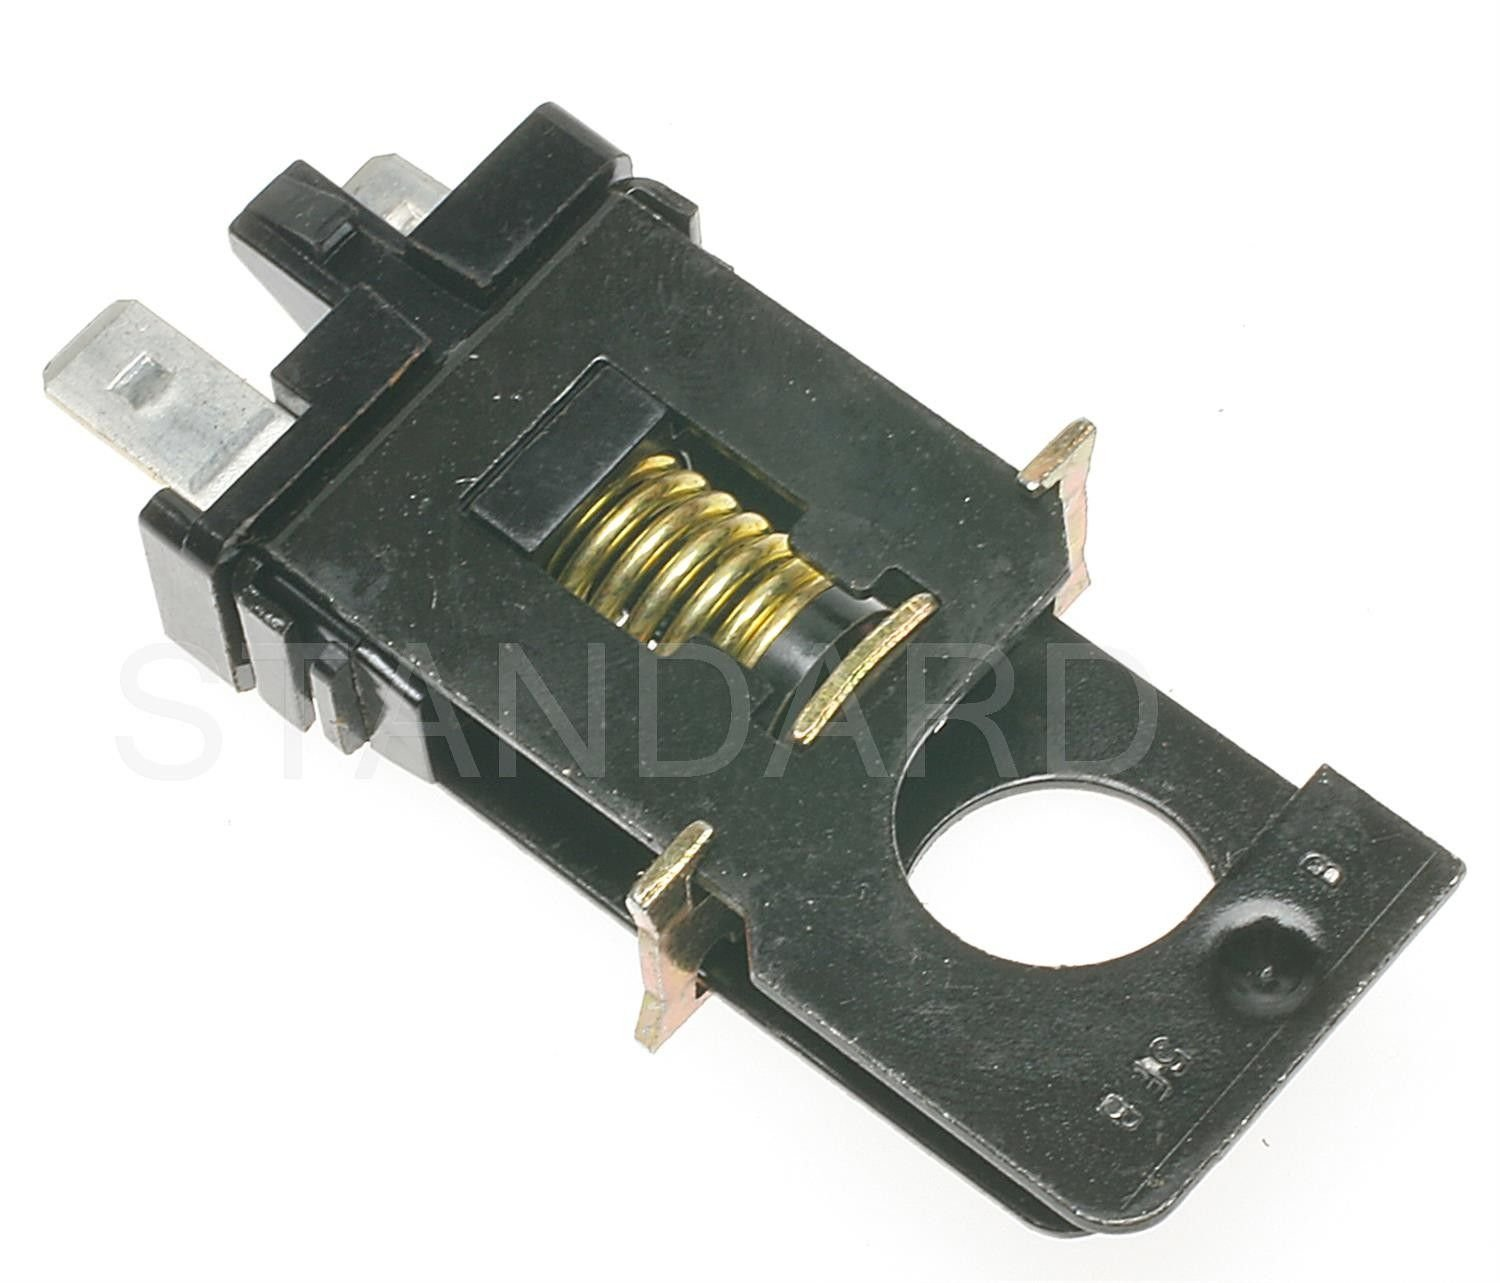 Ford E-350 Econoline Brake Light Switch Replacement